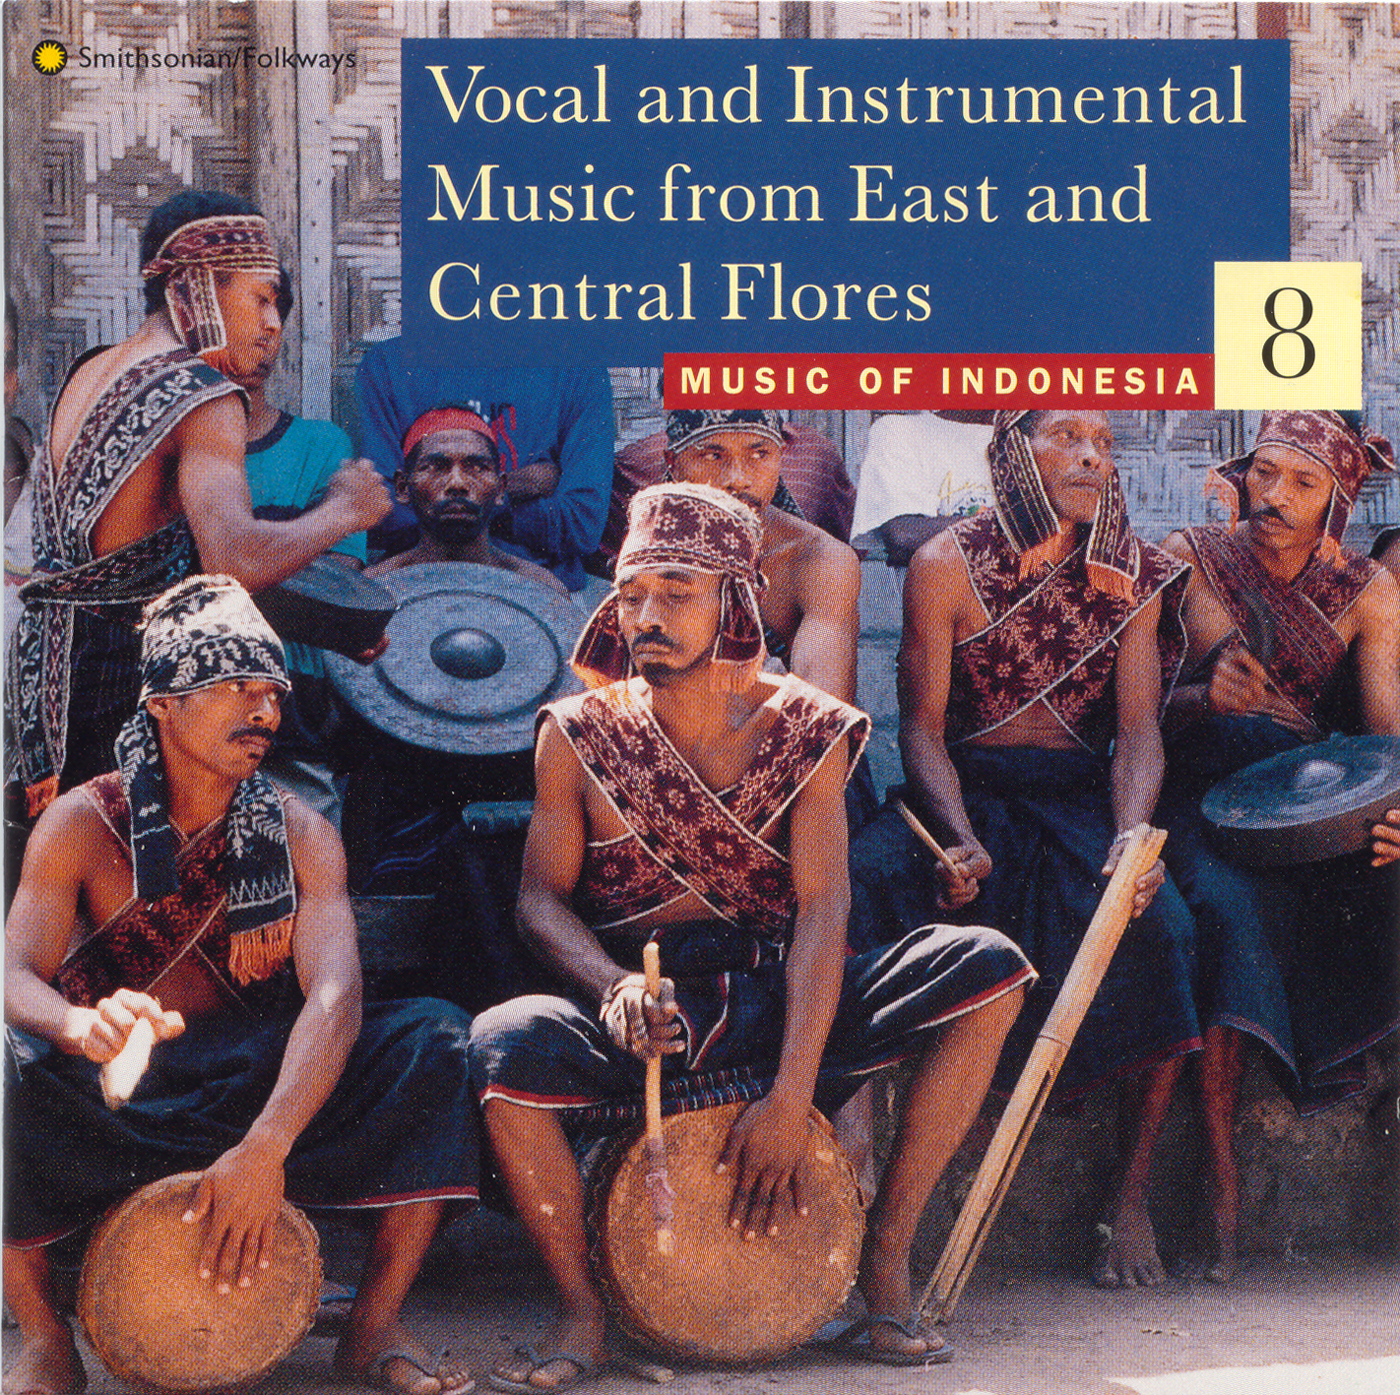 Music of Indonesia, Vol  8: Vocal and Instrumental Music